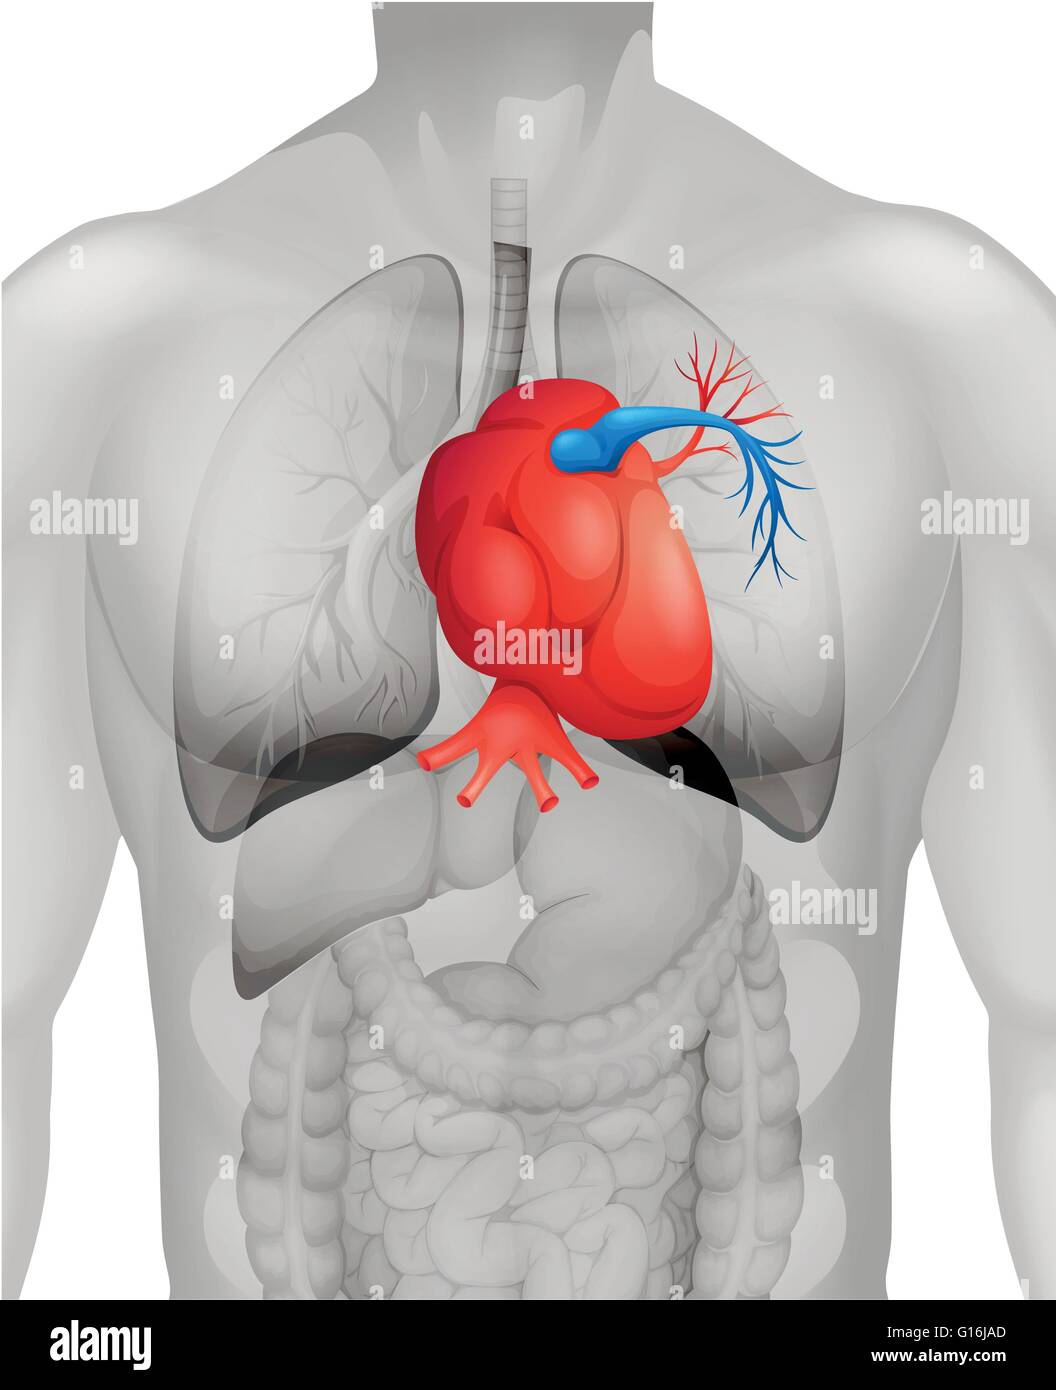 hight resolution of human heart diagram in detail illustration stock image